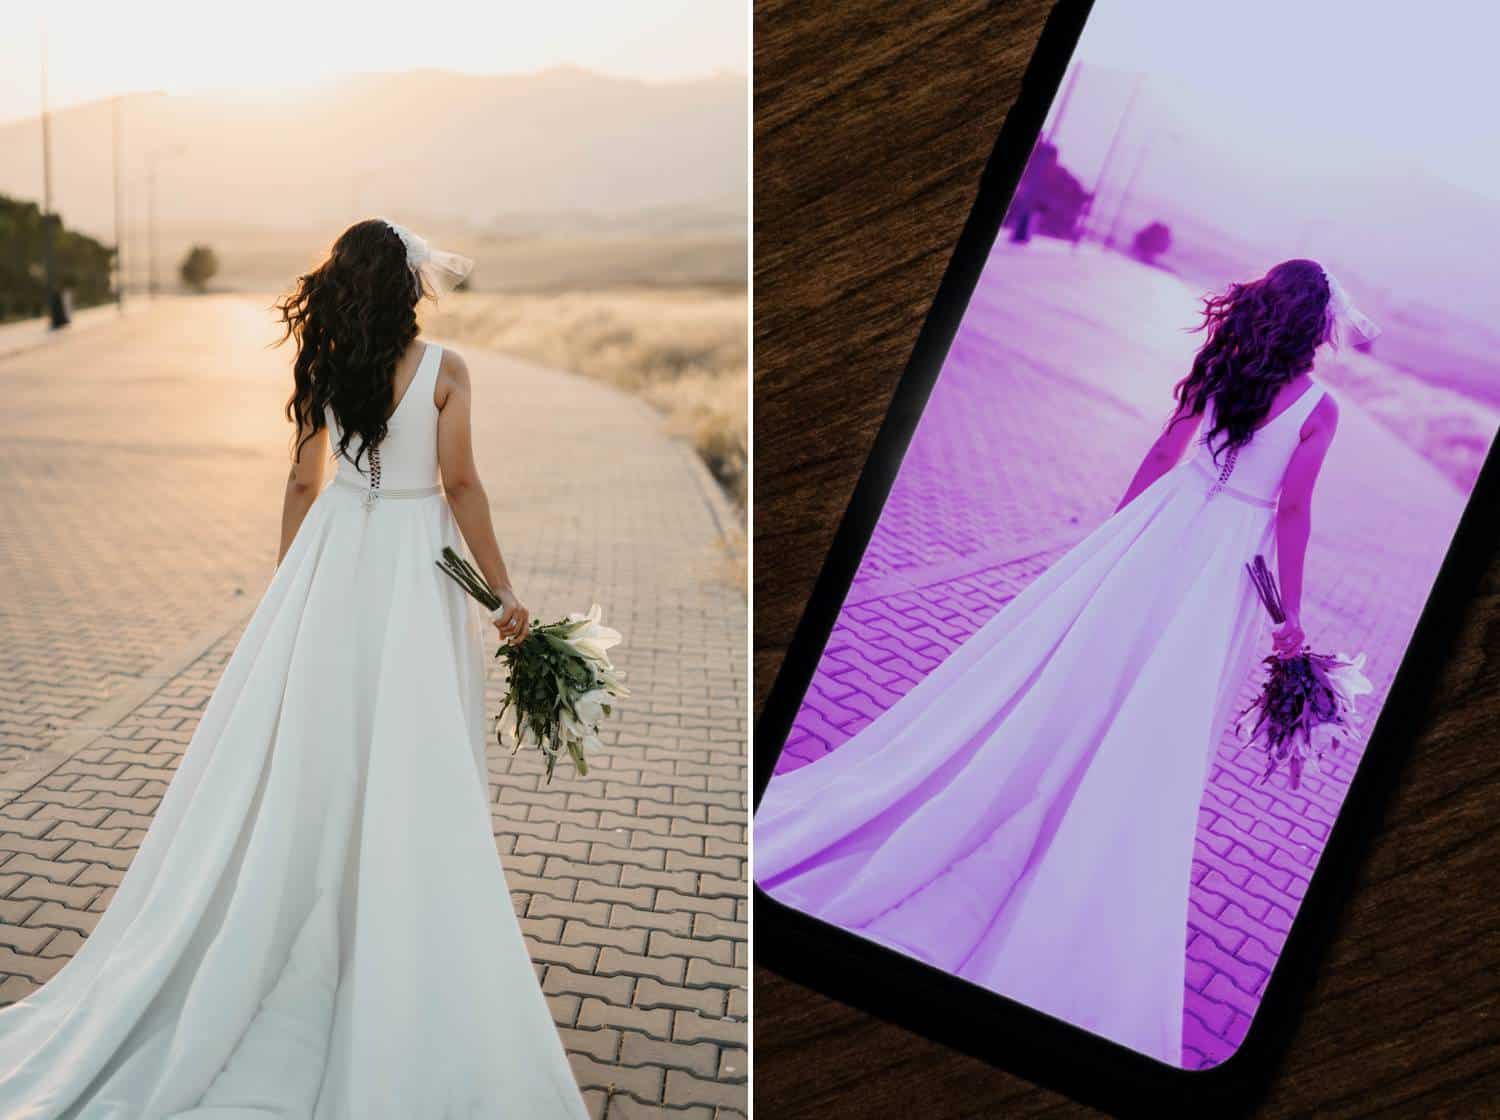 Two photos are displayed side-by-side. On the left is the original photograph of a bride photographed from behind. She is standing on a cobblestone street facing the warm mountain sunset while her dress billows behind her. In the second photo, the bride's image is displayed on an iPhone where it has been overlayed with a fushia filter.